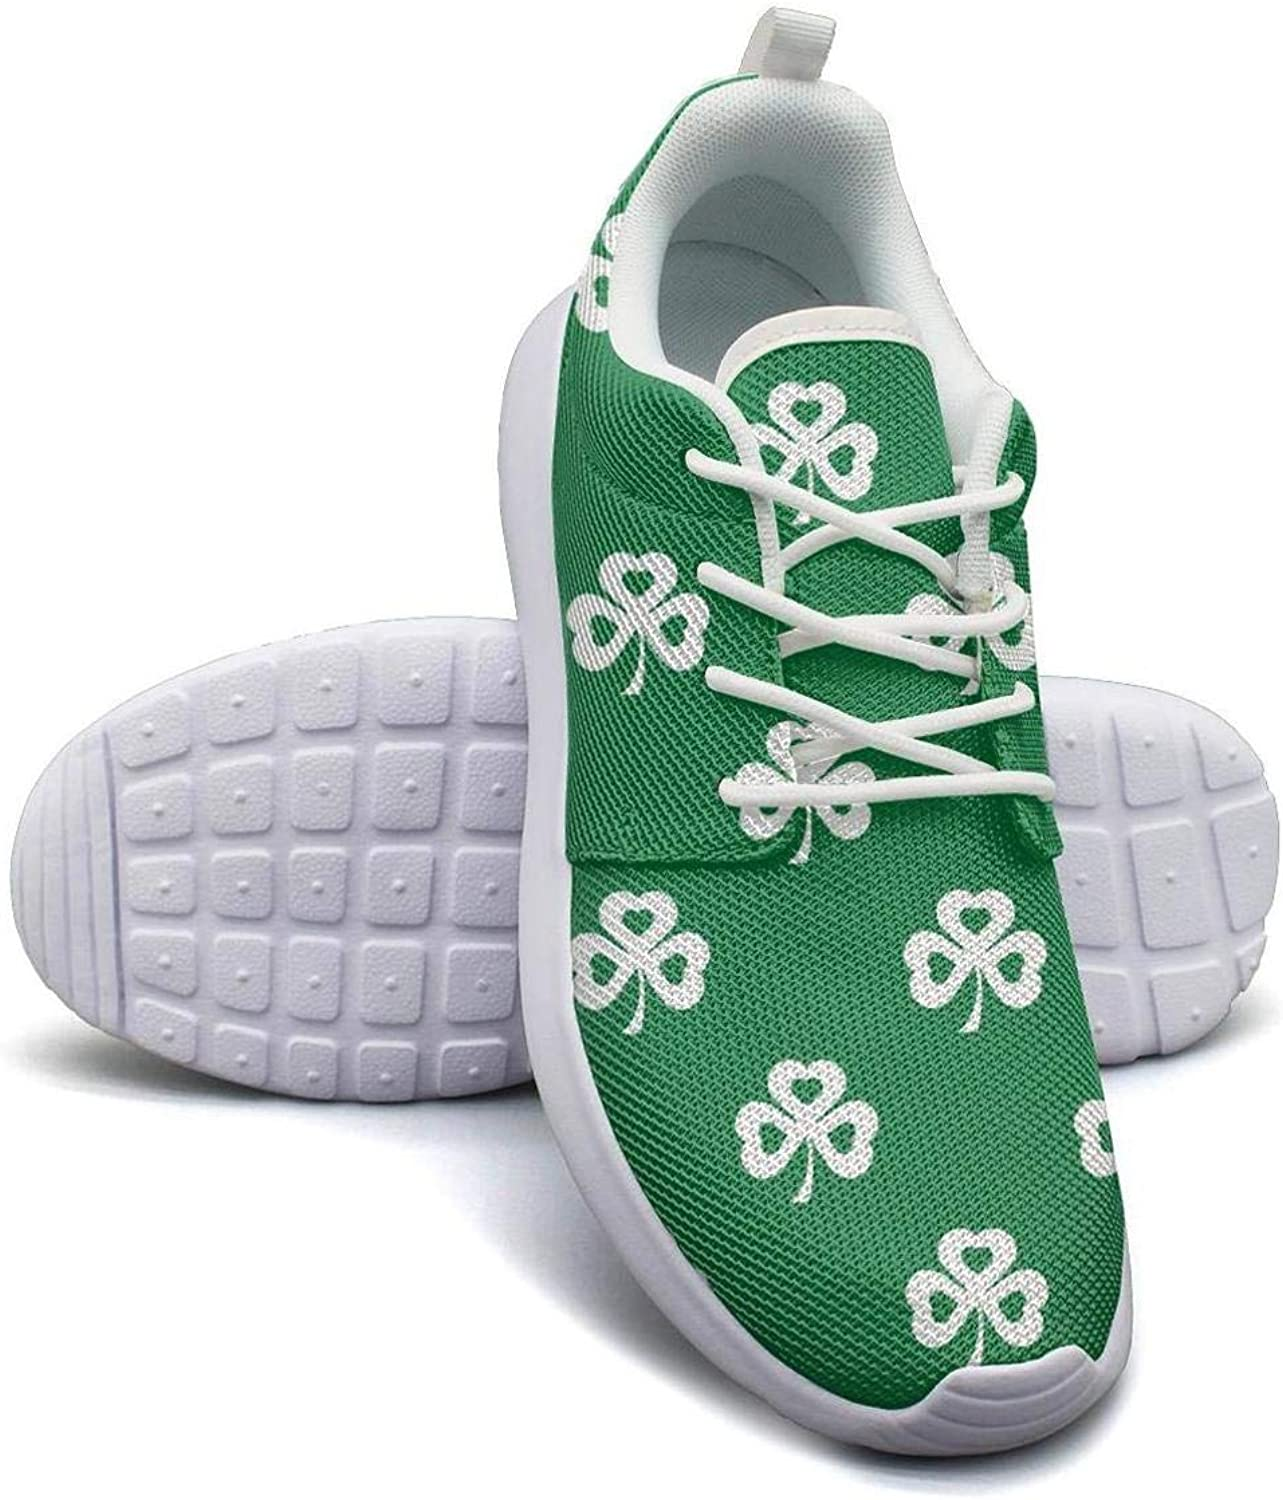 Gjsonmv St. Patrick's Day Vintage mesh Lightweight shoes for Women Non Slip Sports Gym Sneakers shoes